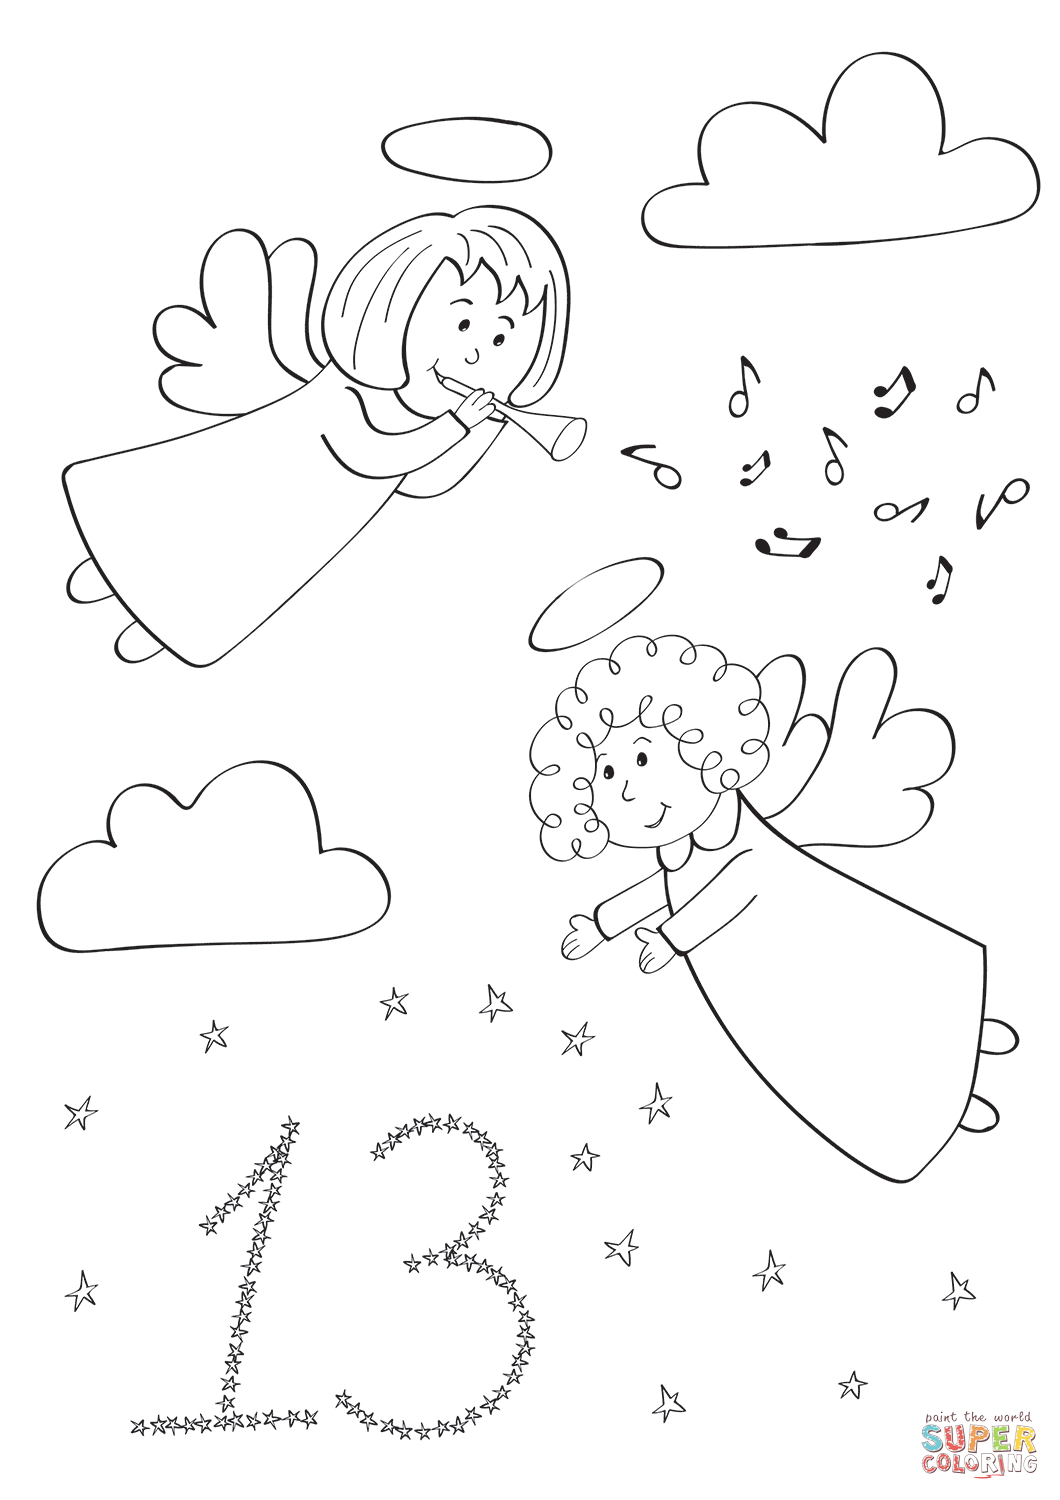 December 13 With Christmas Angels In The Sky Coloring Page Free